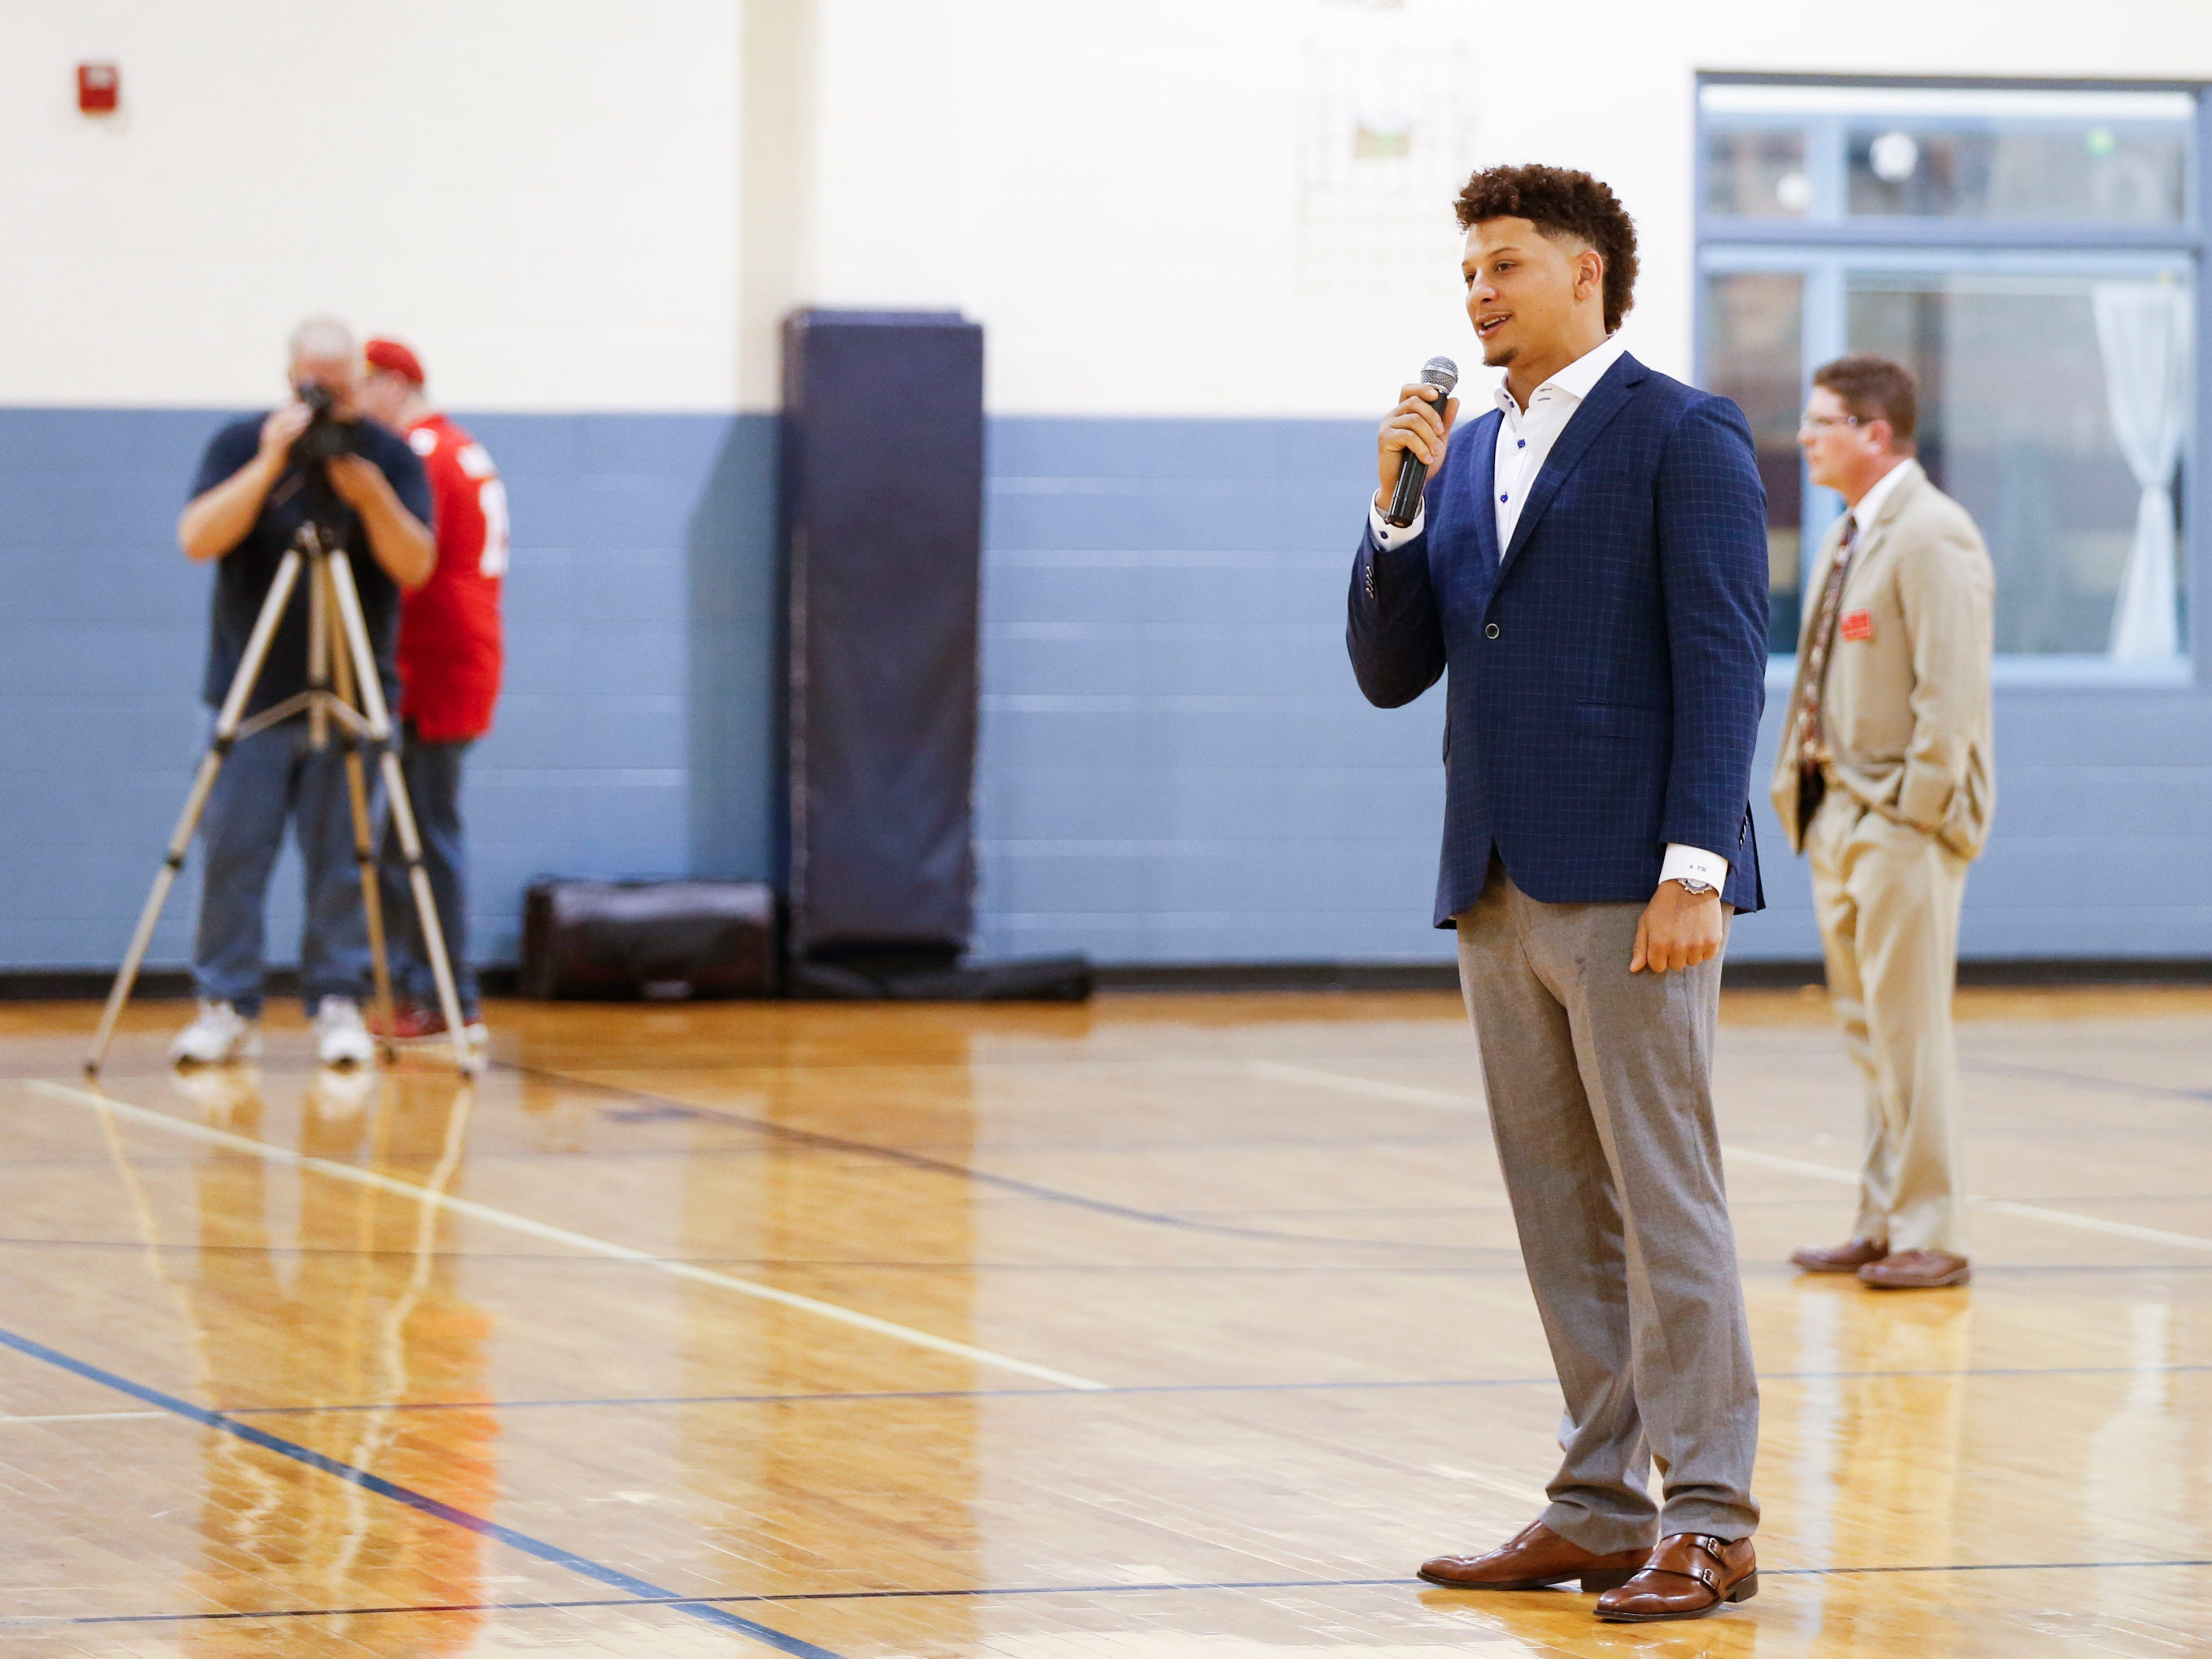 Patrick Mahomes II speaks a group of kids at the Boys & Girls Clubs of Springfield before speaking at the annual 23rd Annual Steak & Steak Dinner on Tuesday, April 9, 2019.